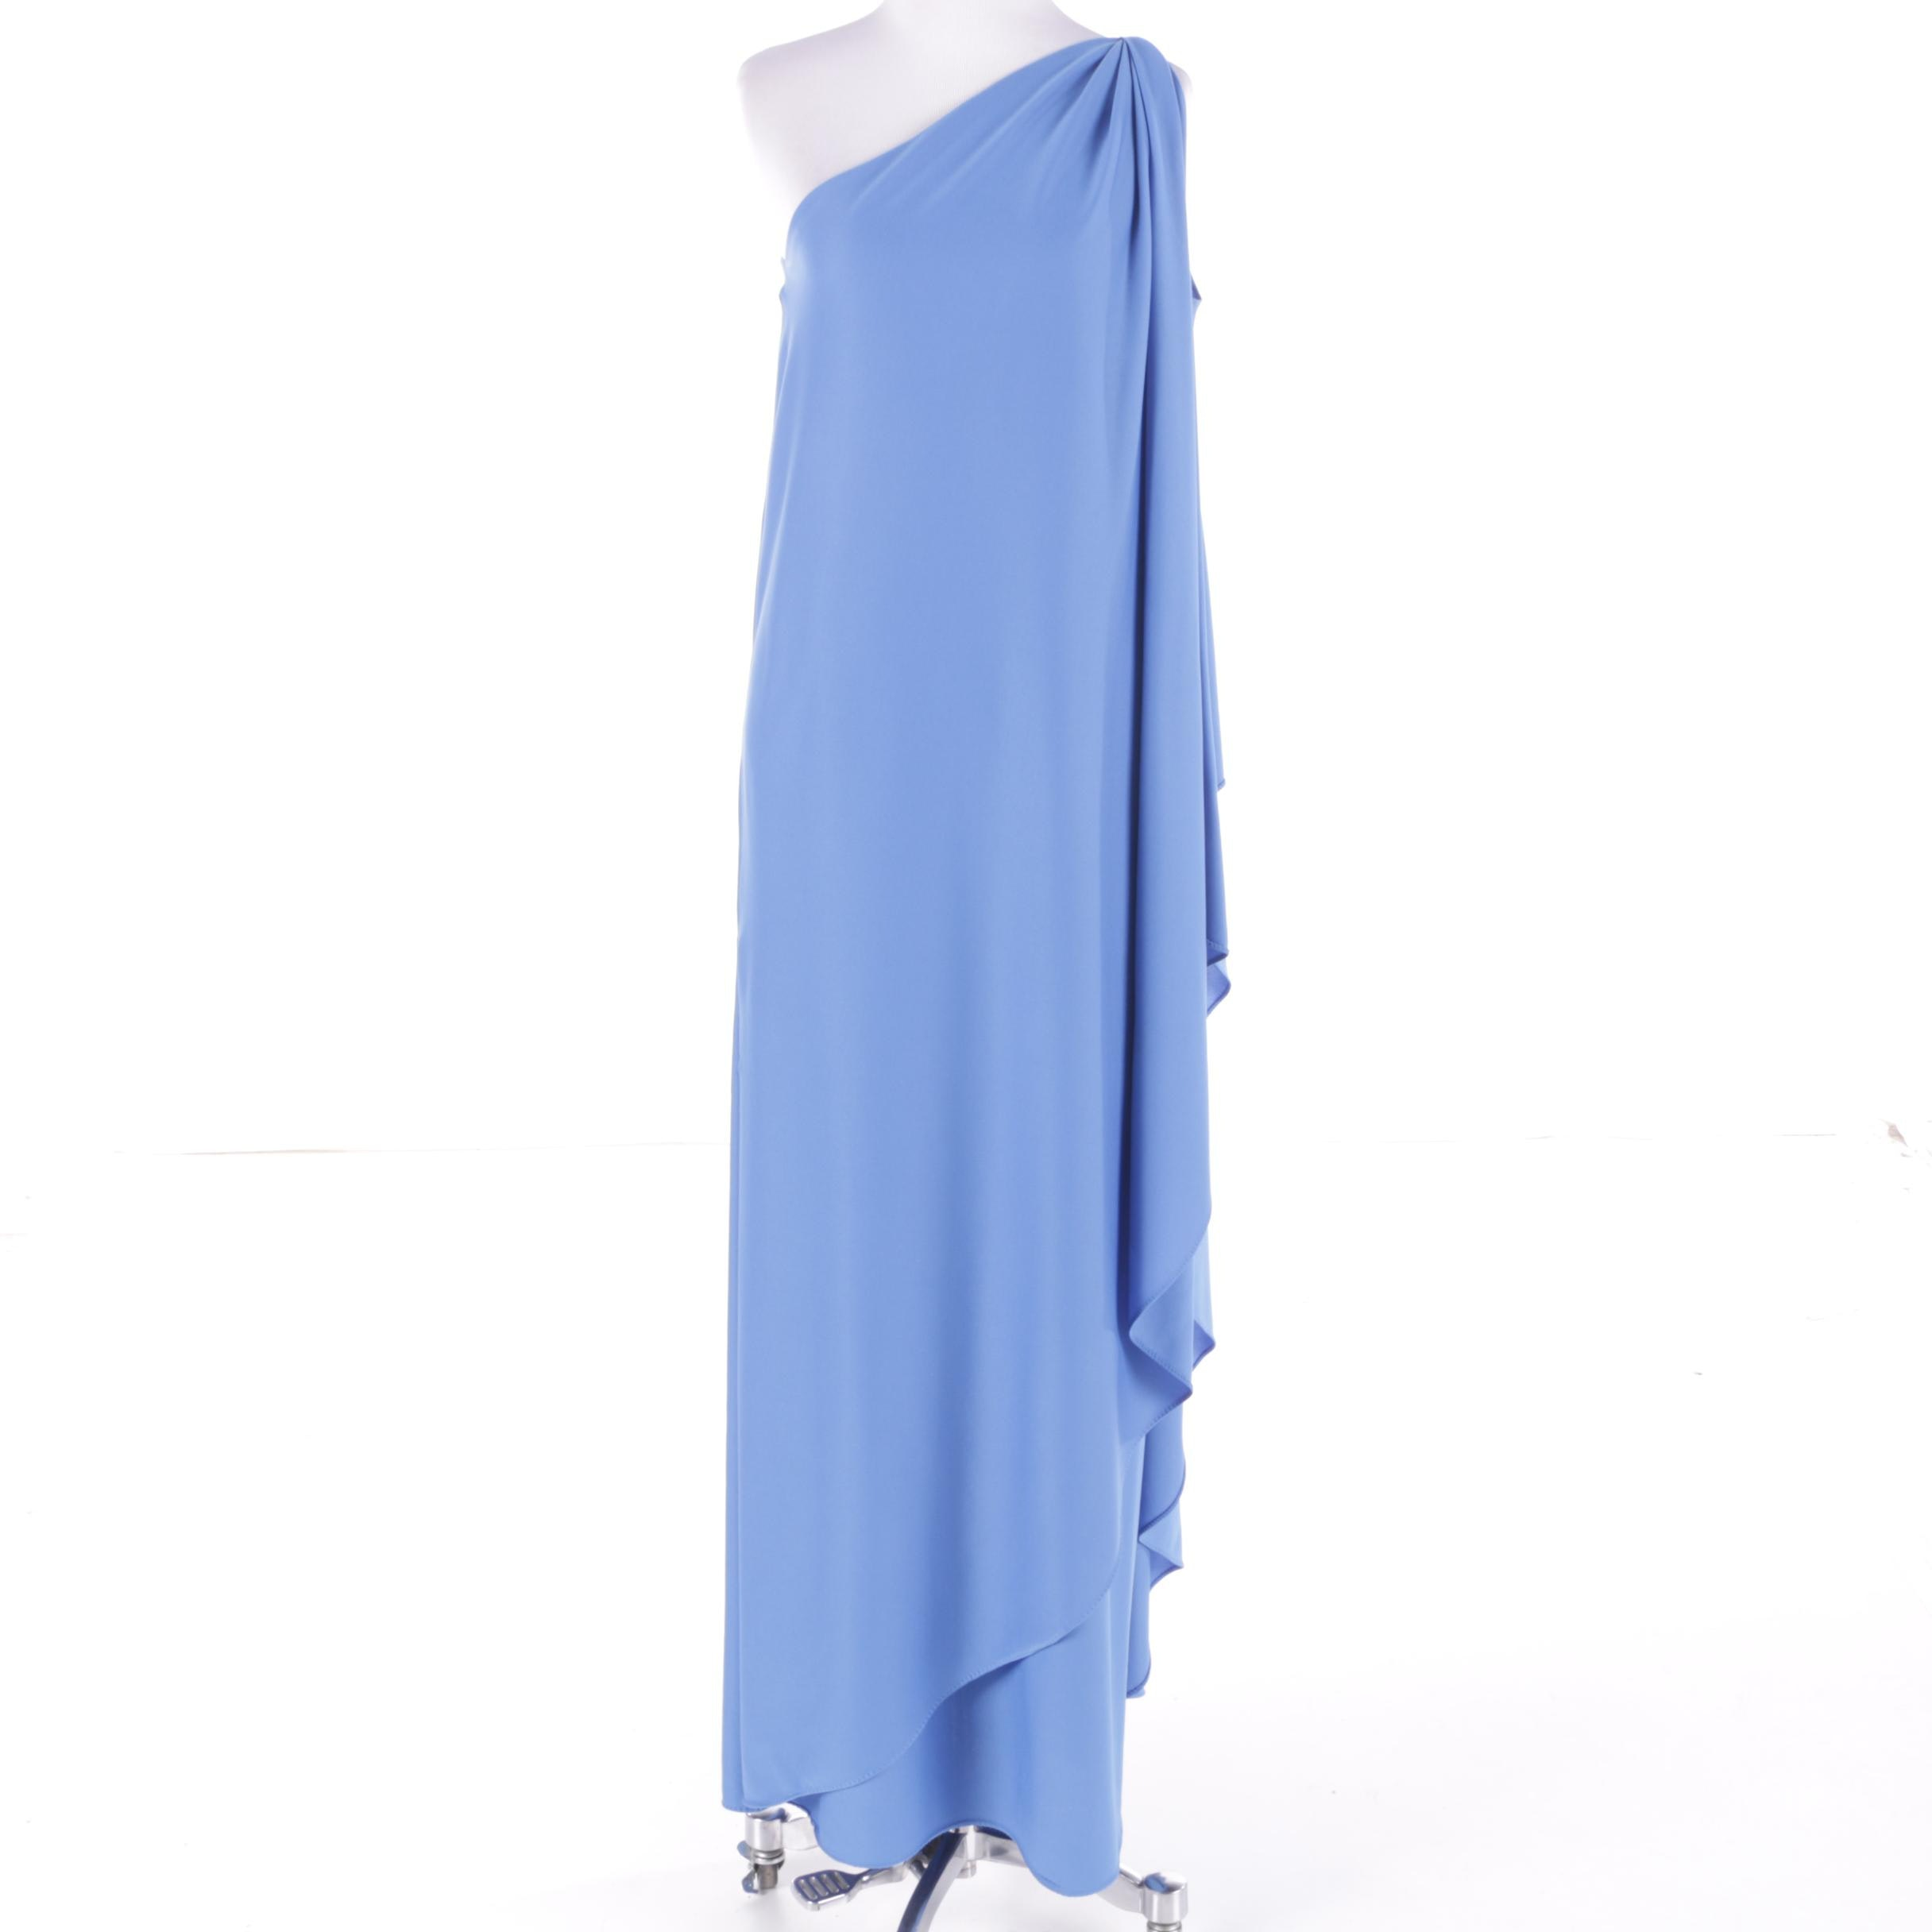 Circa 1970s Vintage Halston IV Sky Blue One-Shoulder Maxi Evening Dress